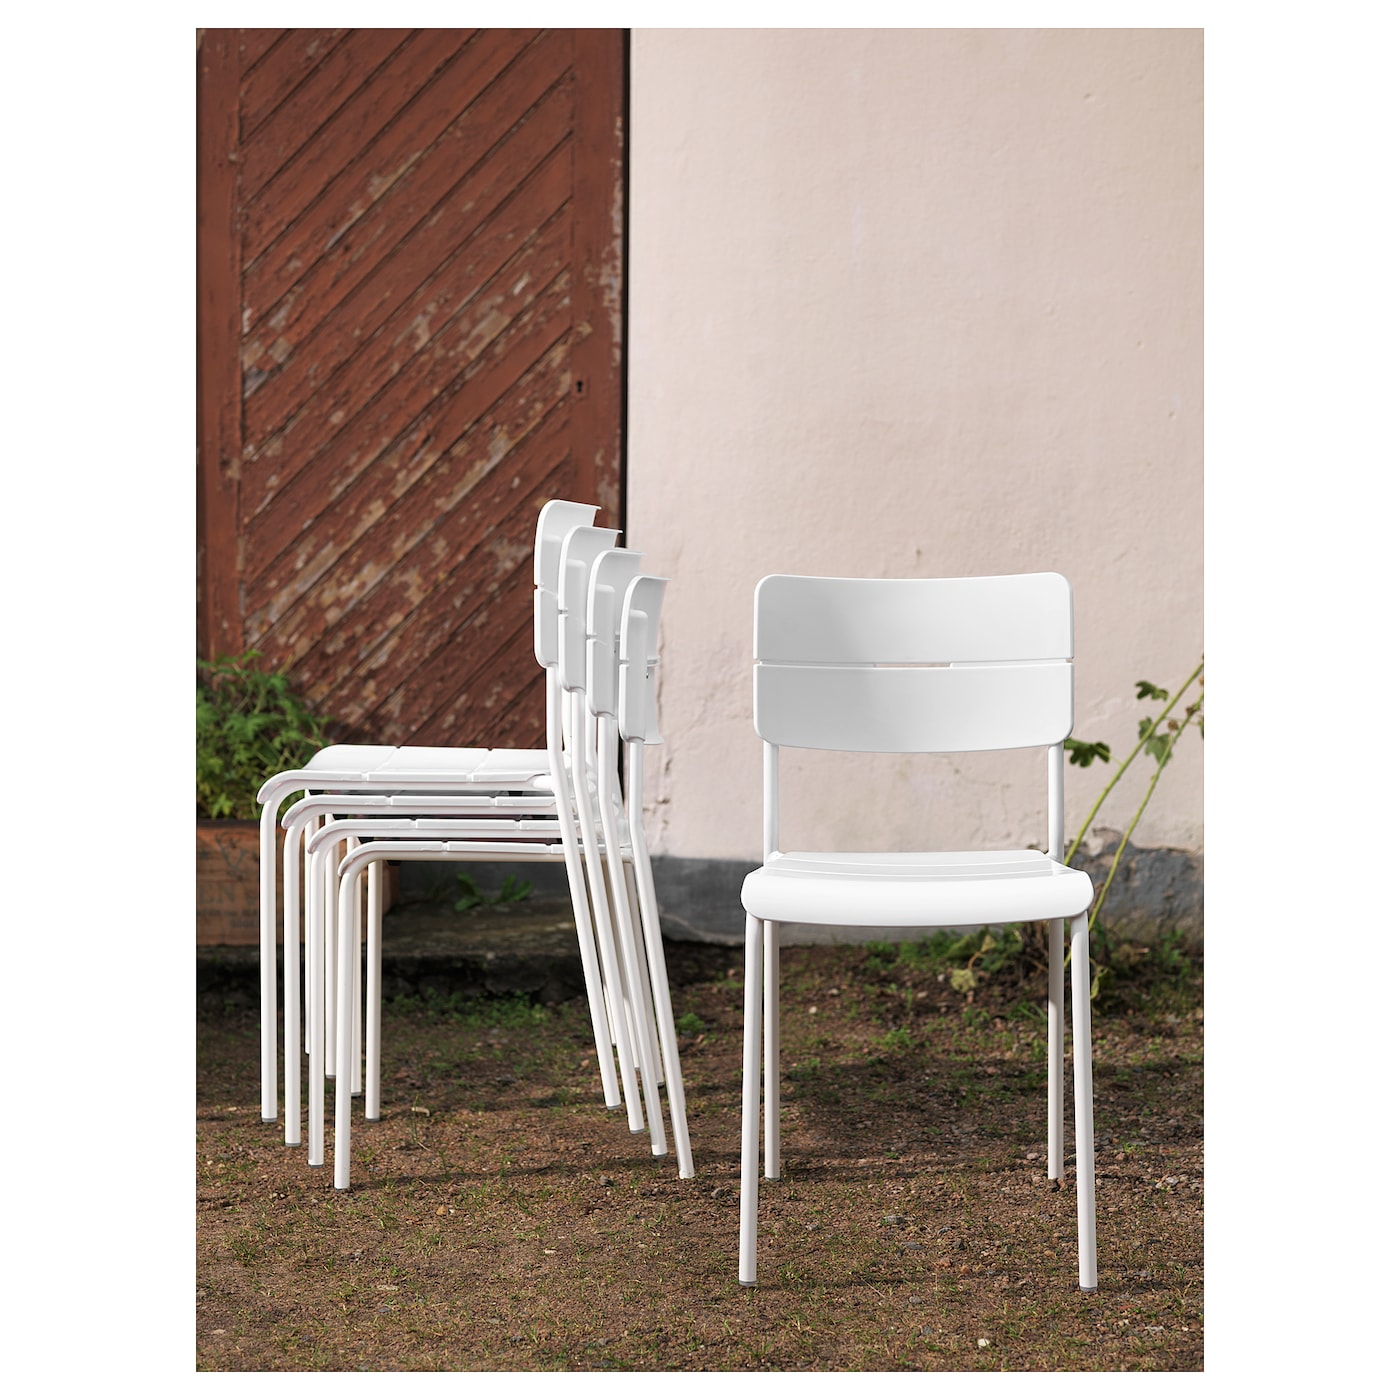 Ikea VÄddÖ Chair Outdoor Easy To Keep Clean Just Wipe With A Damp Cloth